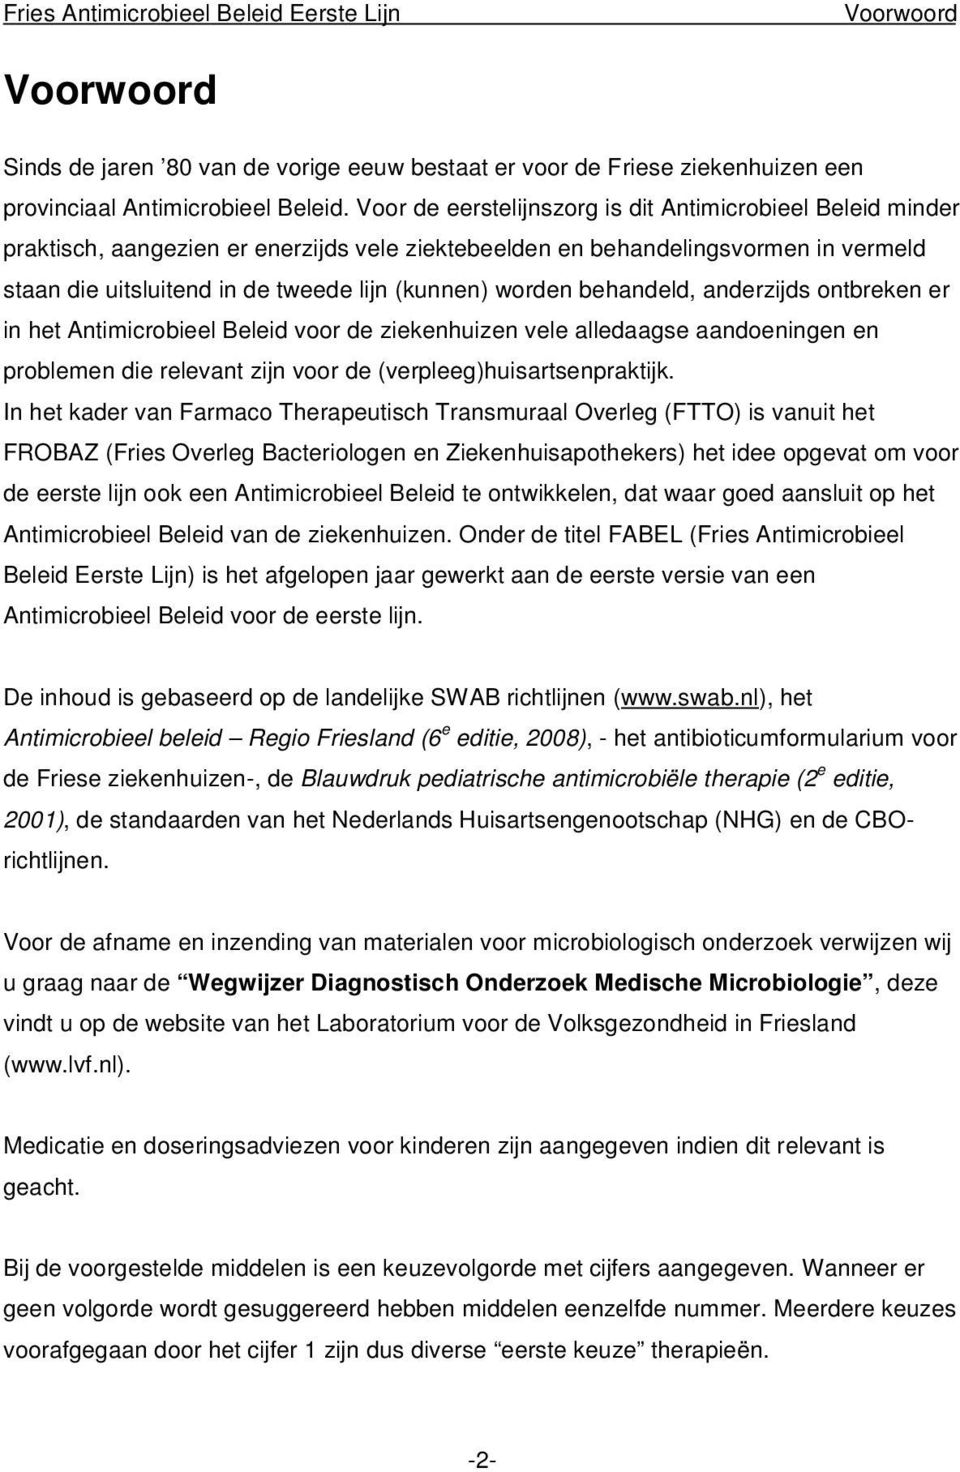 start en stopcriteria medicatie